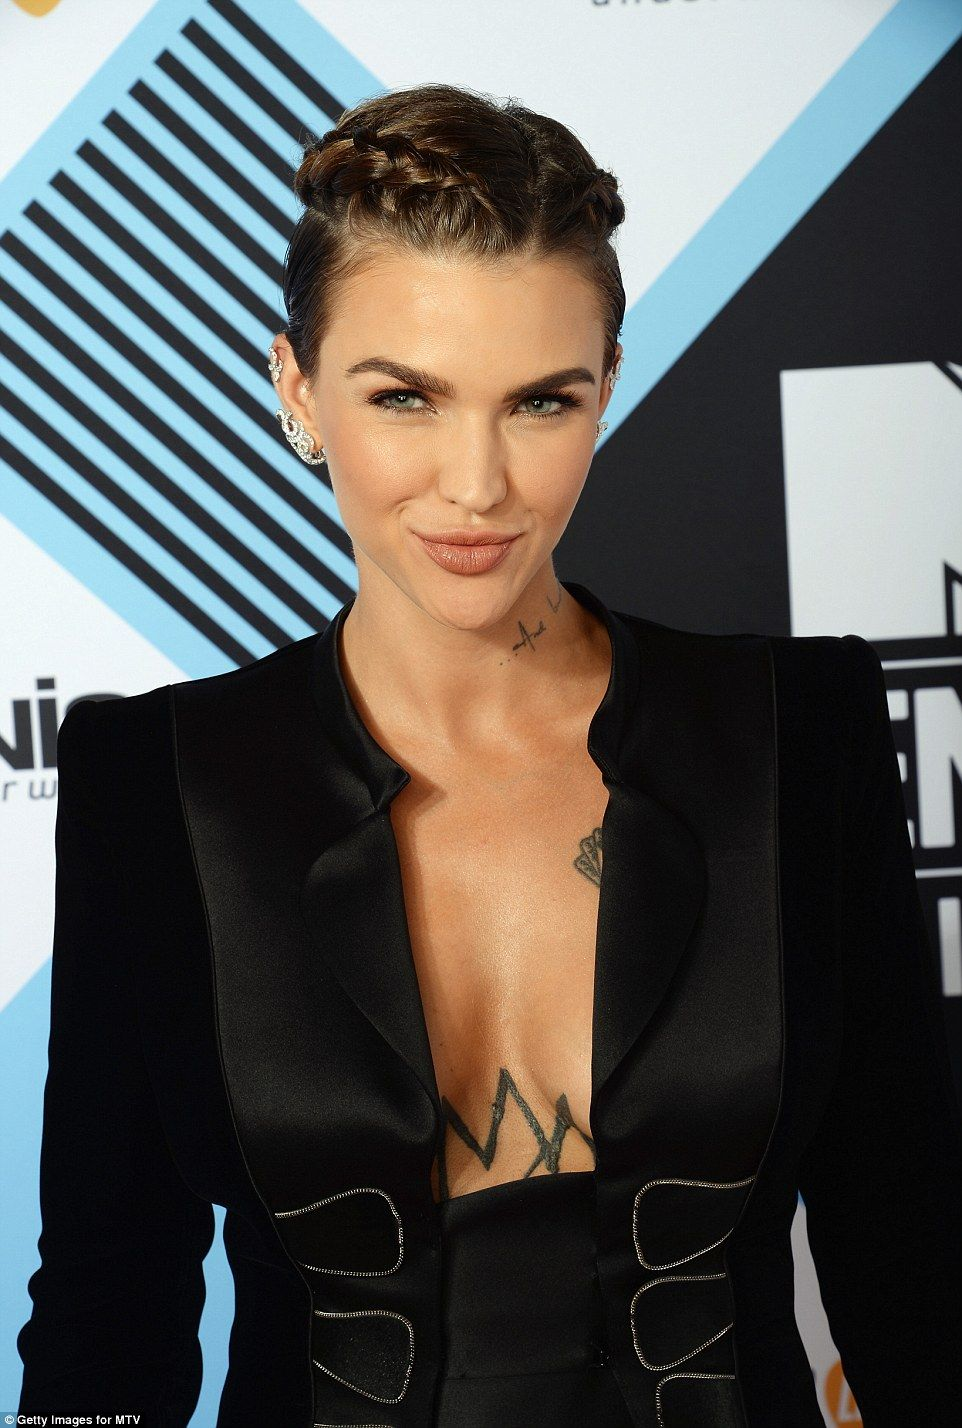 Ellie Goulding Is Joined By Ruby Rose And Hailey Baldwin At Mtv Emas